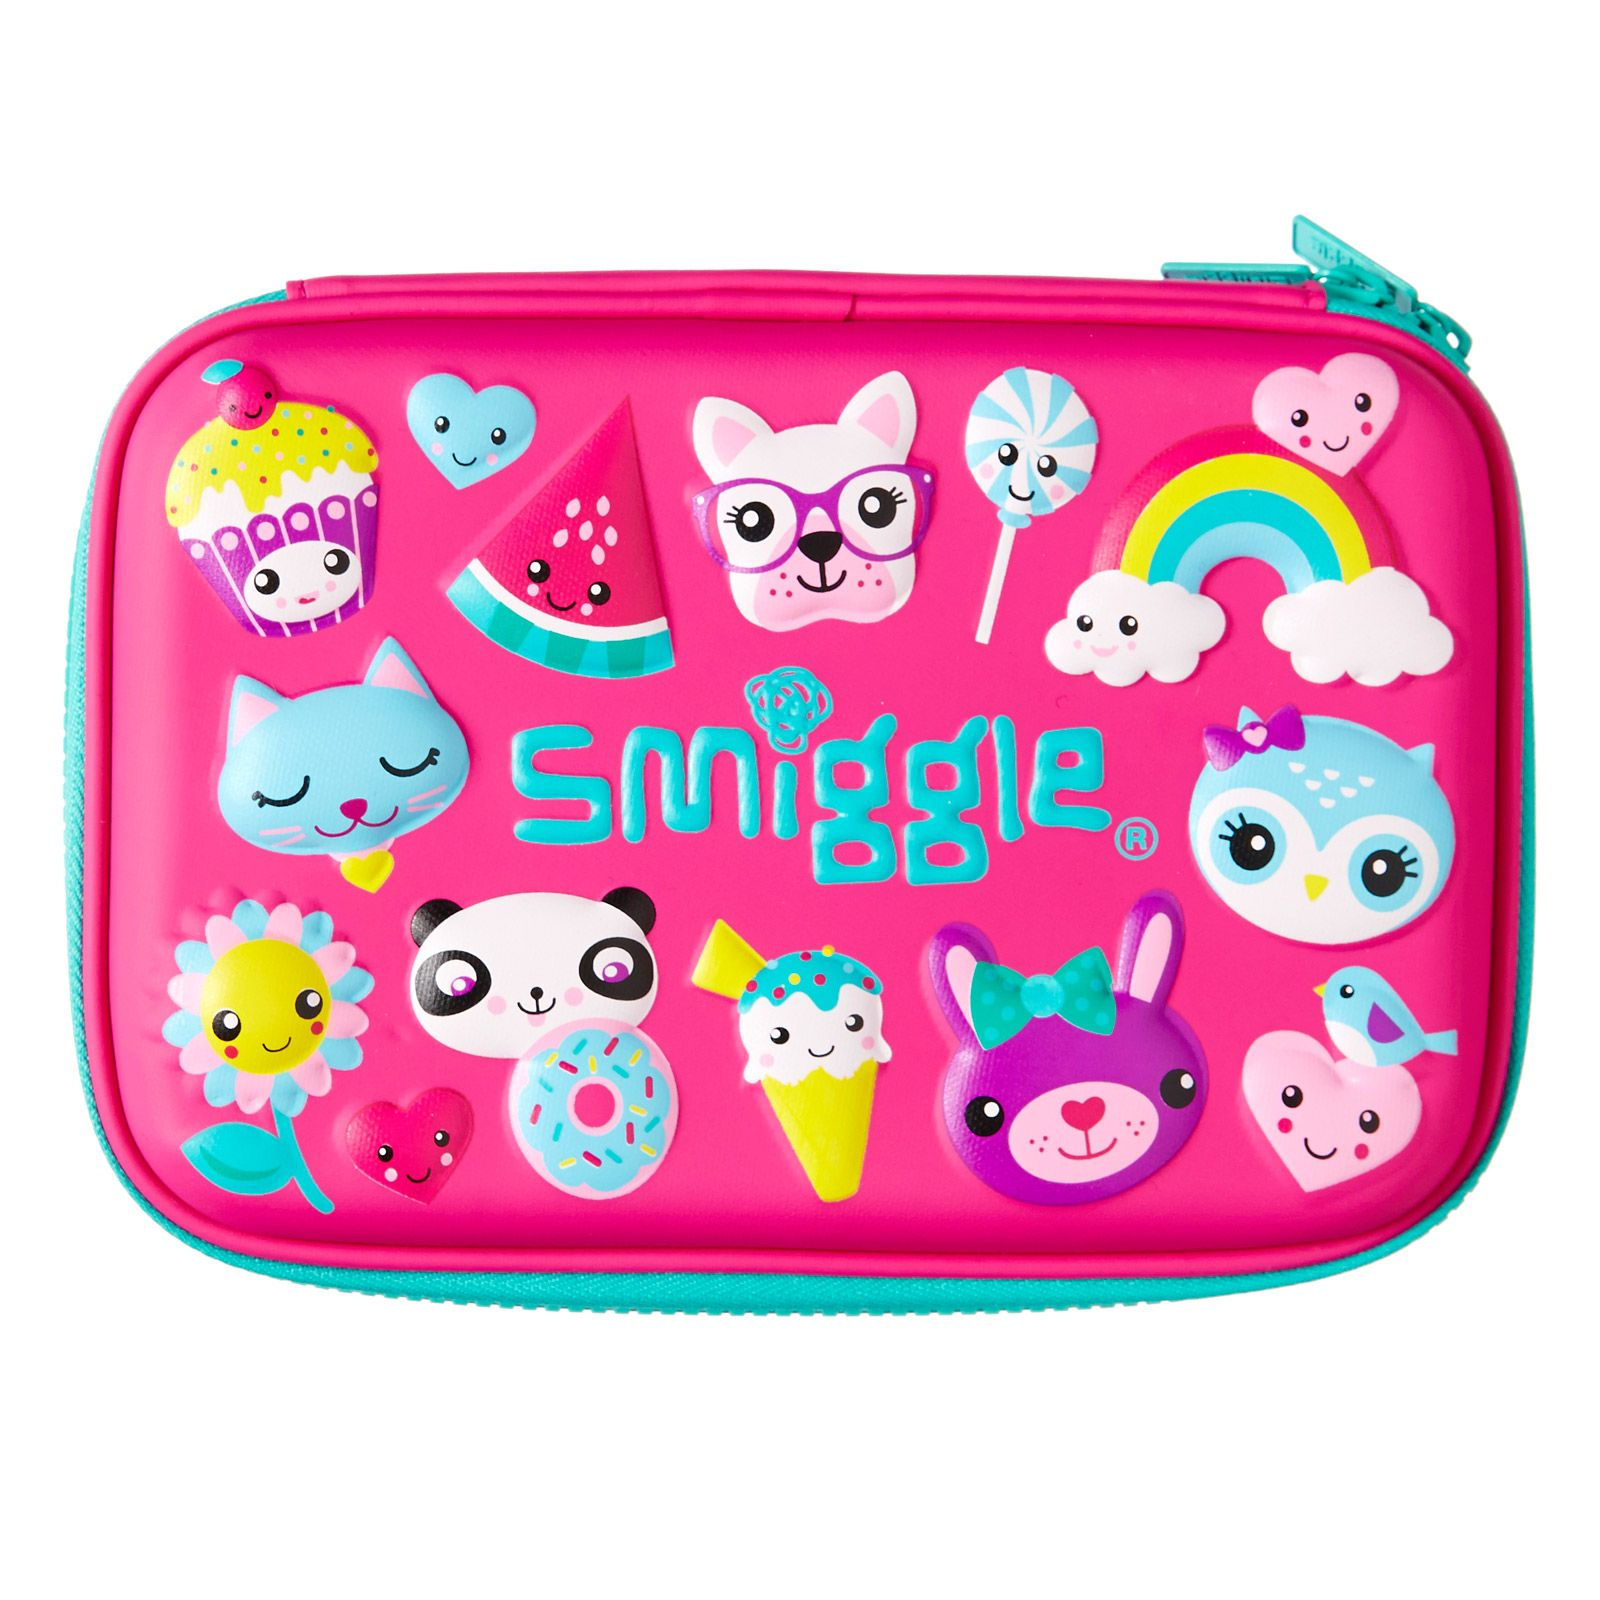 Image for Groovy Hardtop Pencil Case from Smiggle Kids